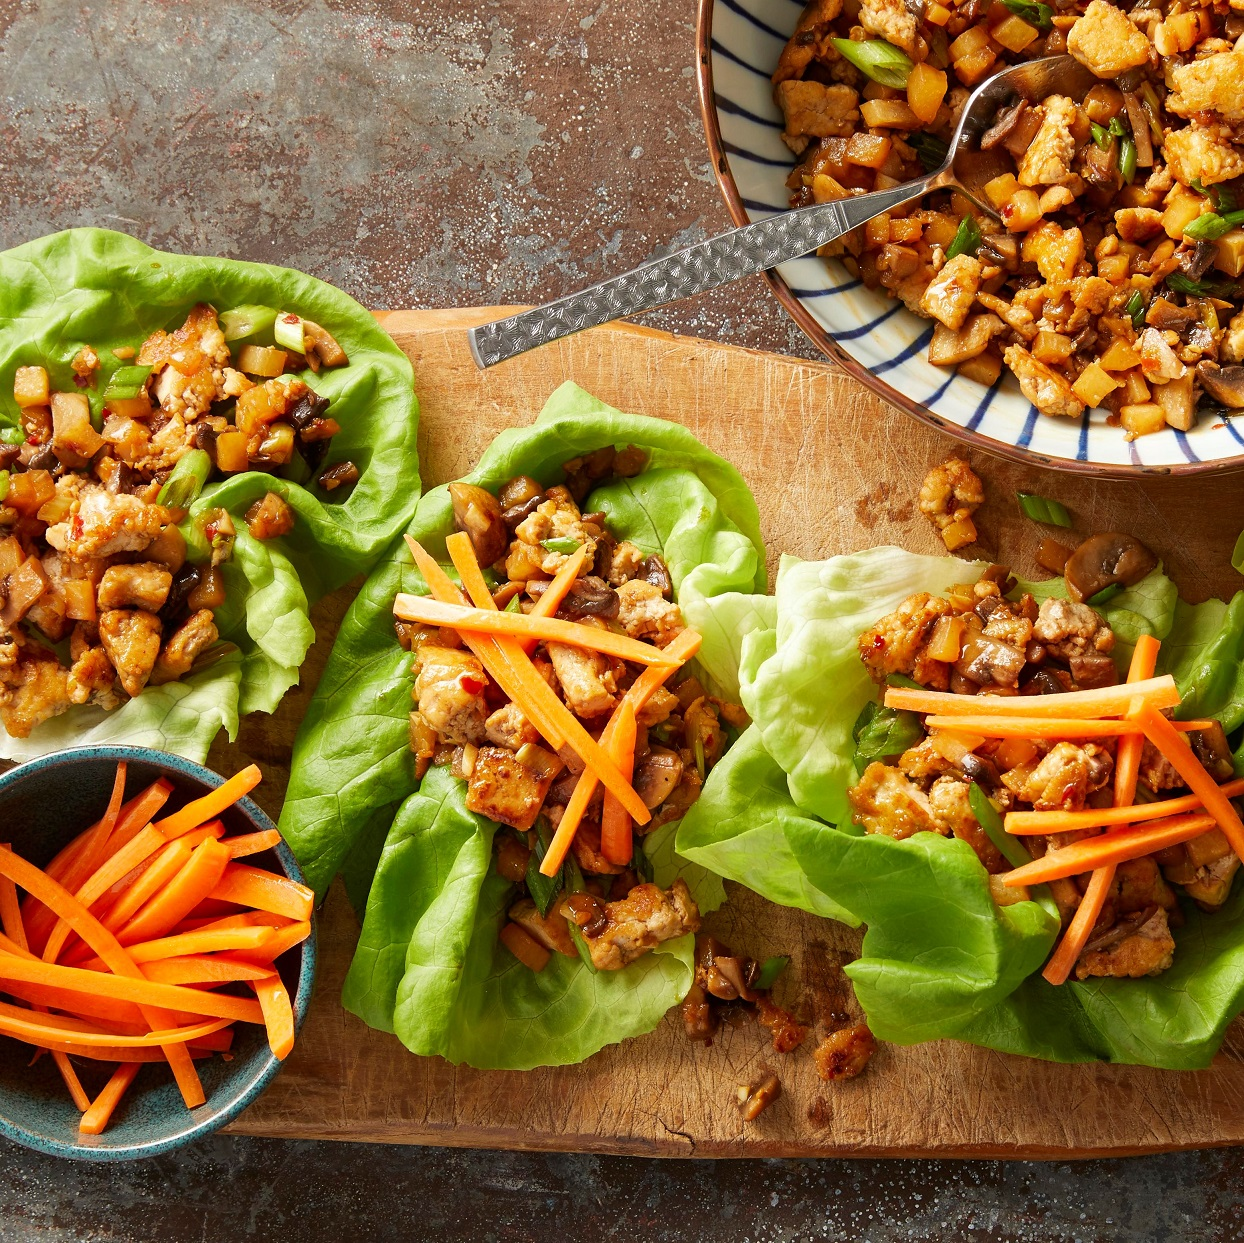 Stuff crisp lettuce leaves with a savory filling inspired by PF Chang's famous lettuce wraps. These low-carb wraps made with tofu, mushrooms and daikon radish are an easy vegetarian dinner that beats takeout! Garnish the wraps with julienned carrots for added crunch.